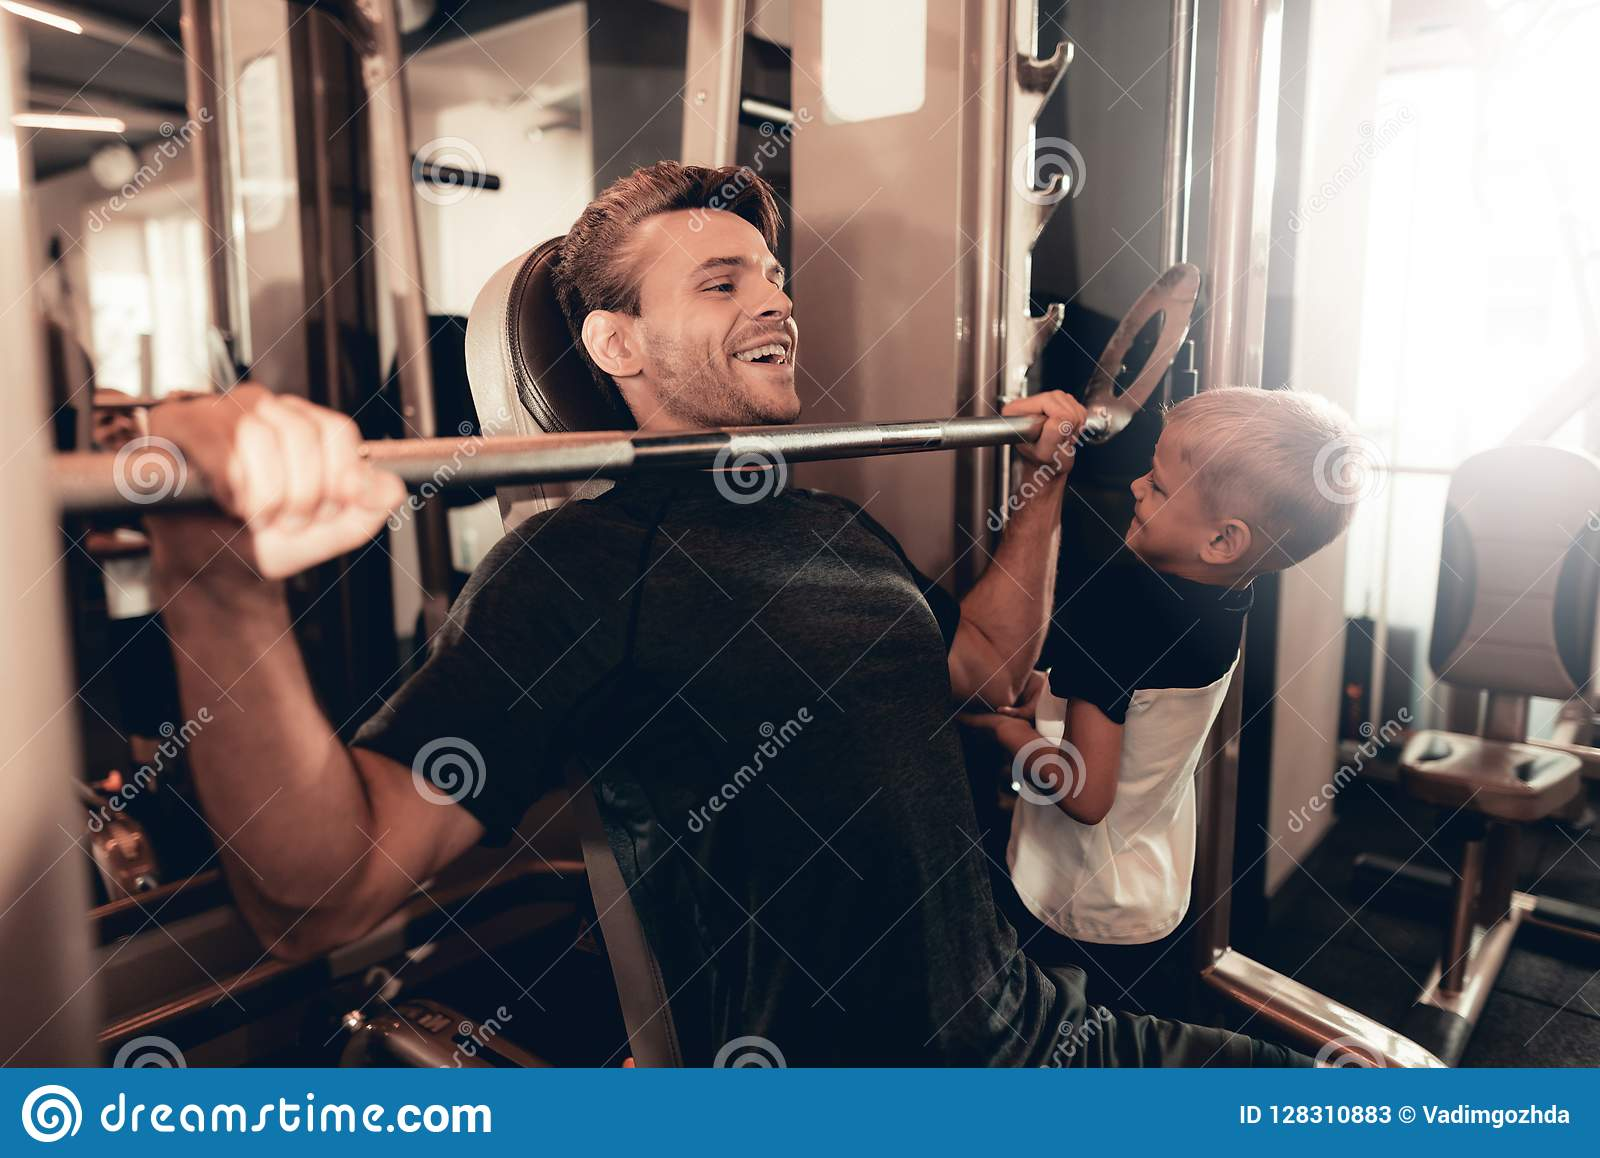 Son Support To Father While Lifting The Barbell.